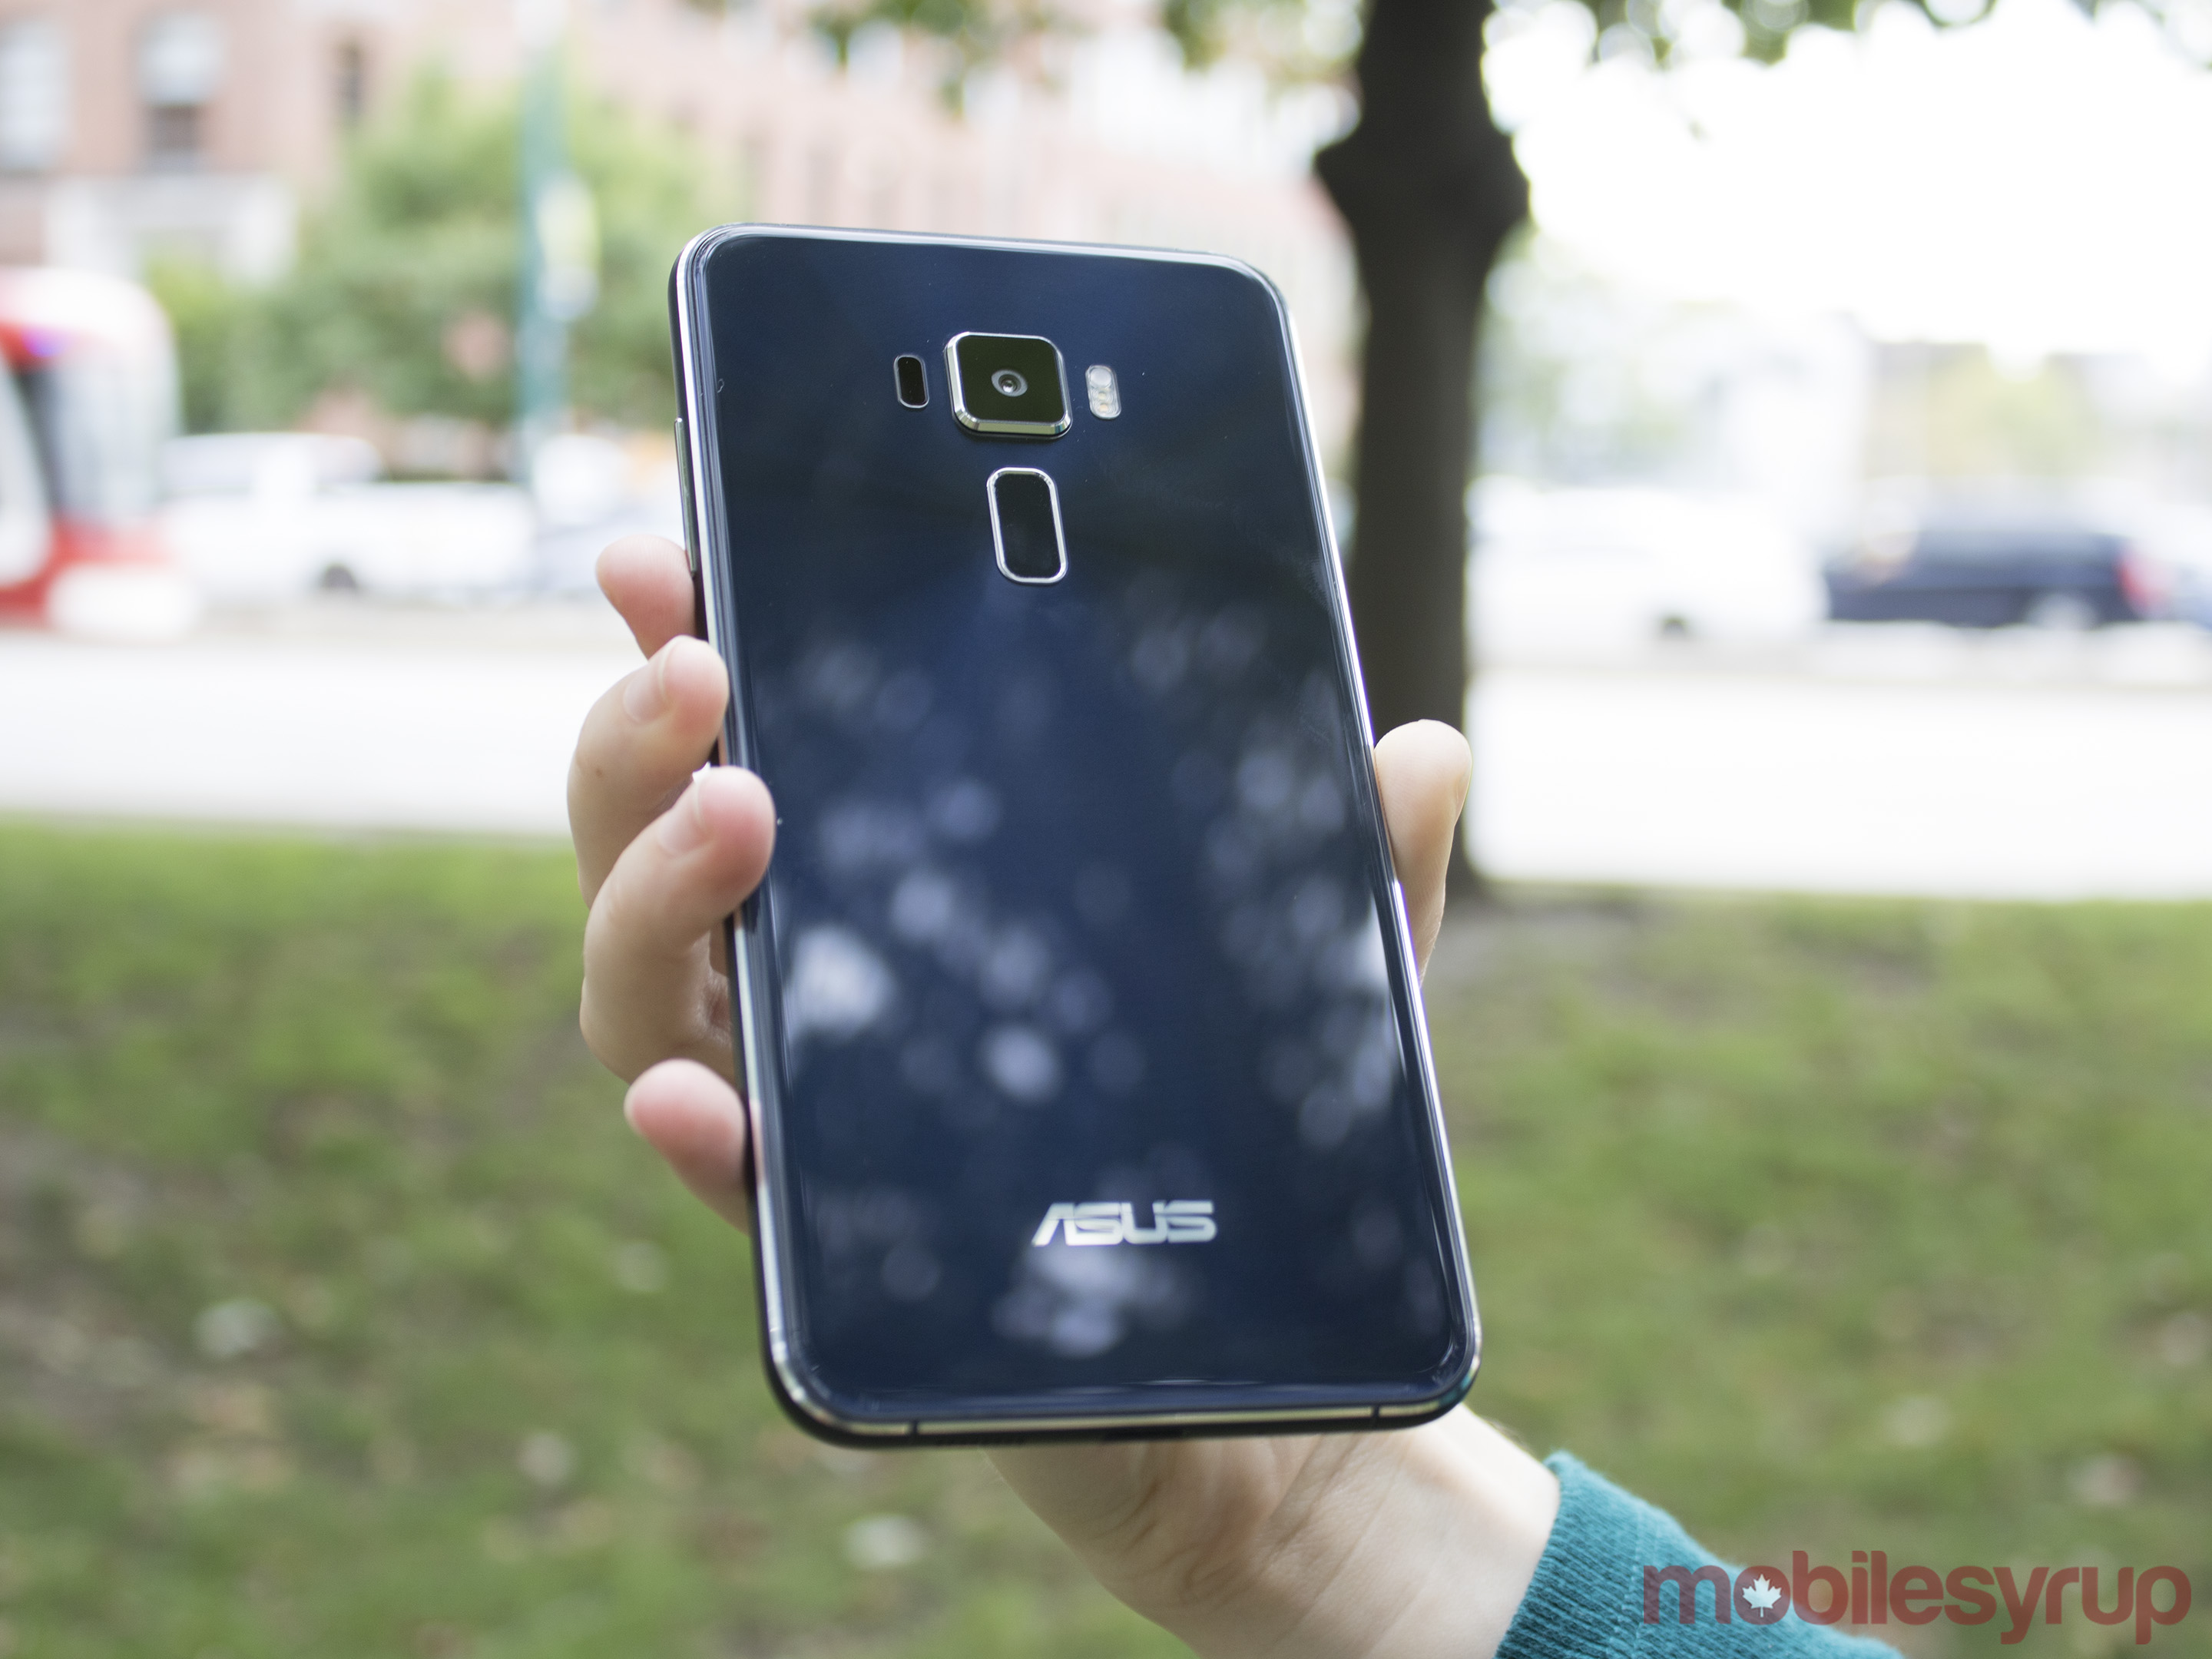 A first look at the 'built for photography' $430 Asus Zenfone 3 [Gallery] | MobileSyrup